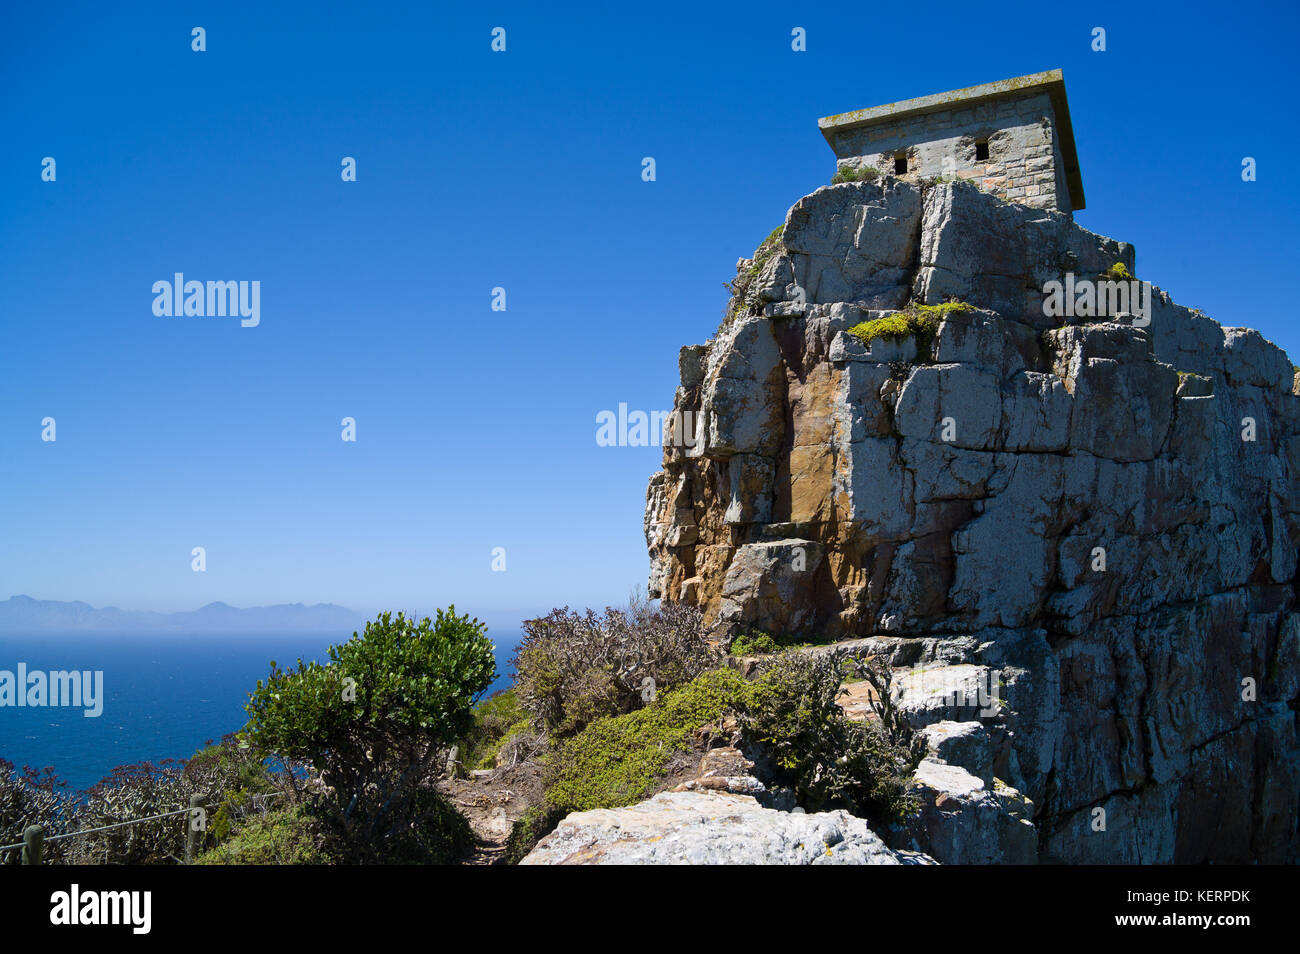 Cape point fait partie de table mountain national park et offre une vue imprenable et l'occasion de randonnée Photo Stock